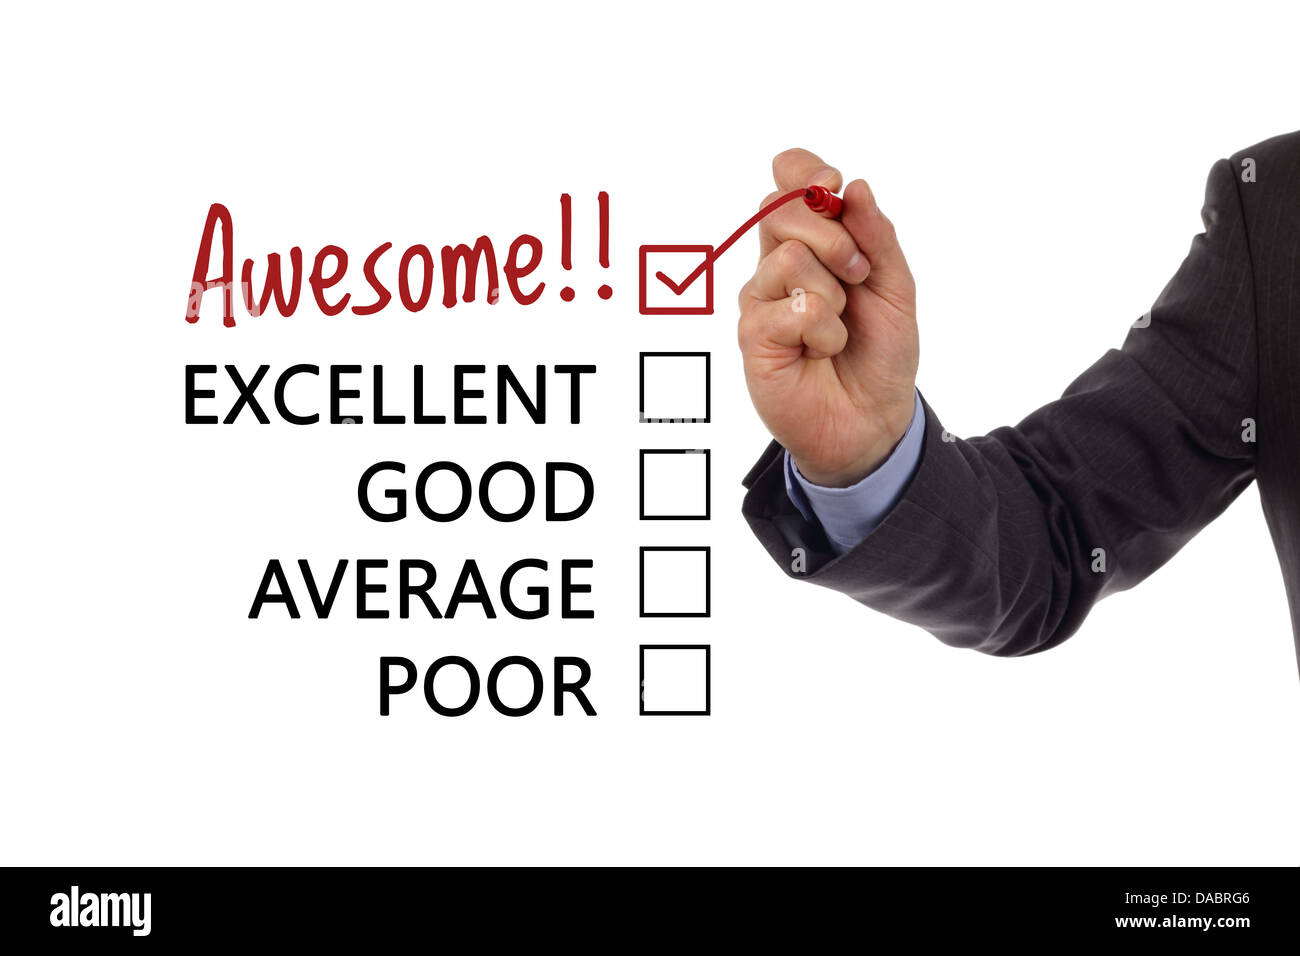 Customer service satisfaction survey - Stock Image